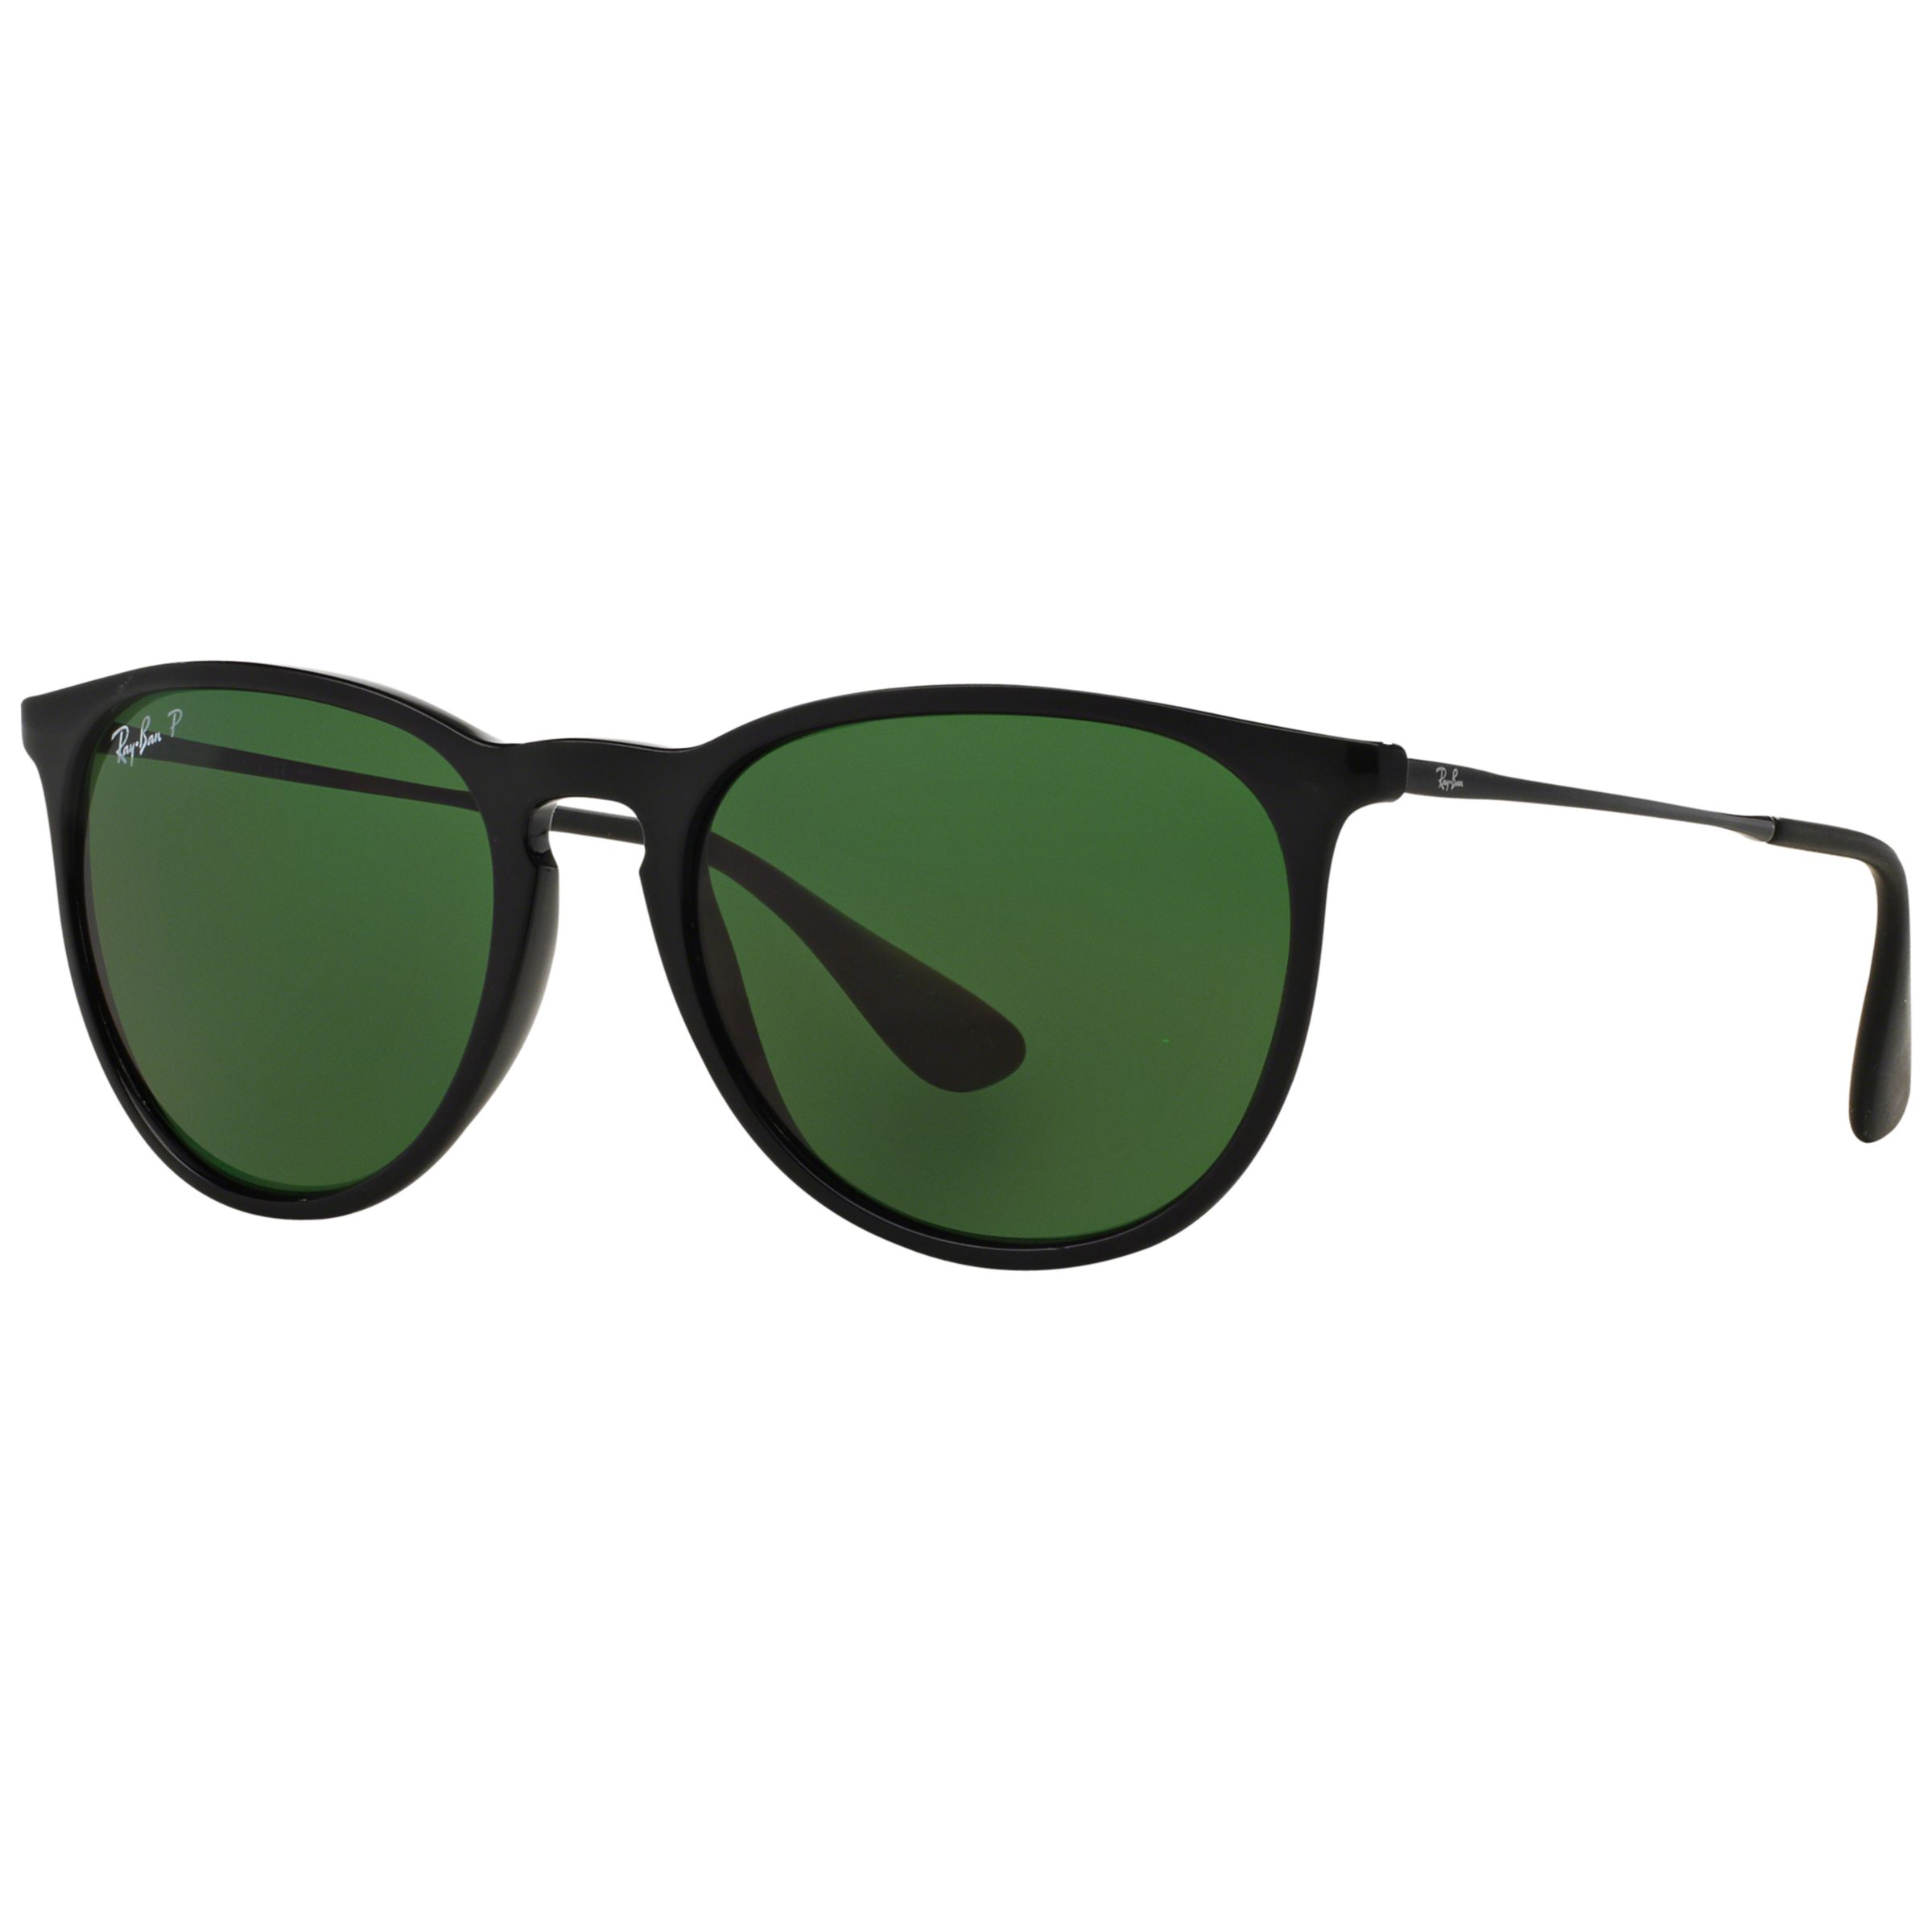 02760806a0 Ray-Ban RB4171 Women s Erika Polarised Oval Sunglasses at John Lewis    Partners